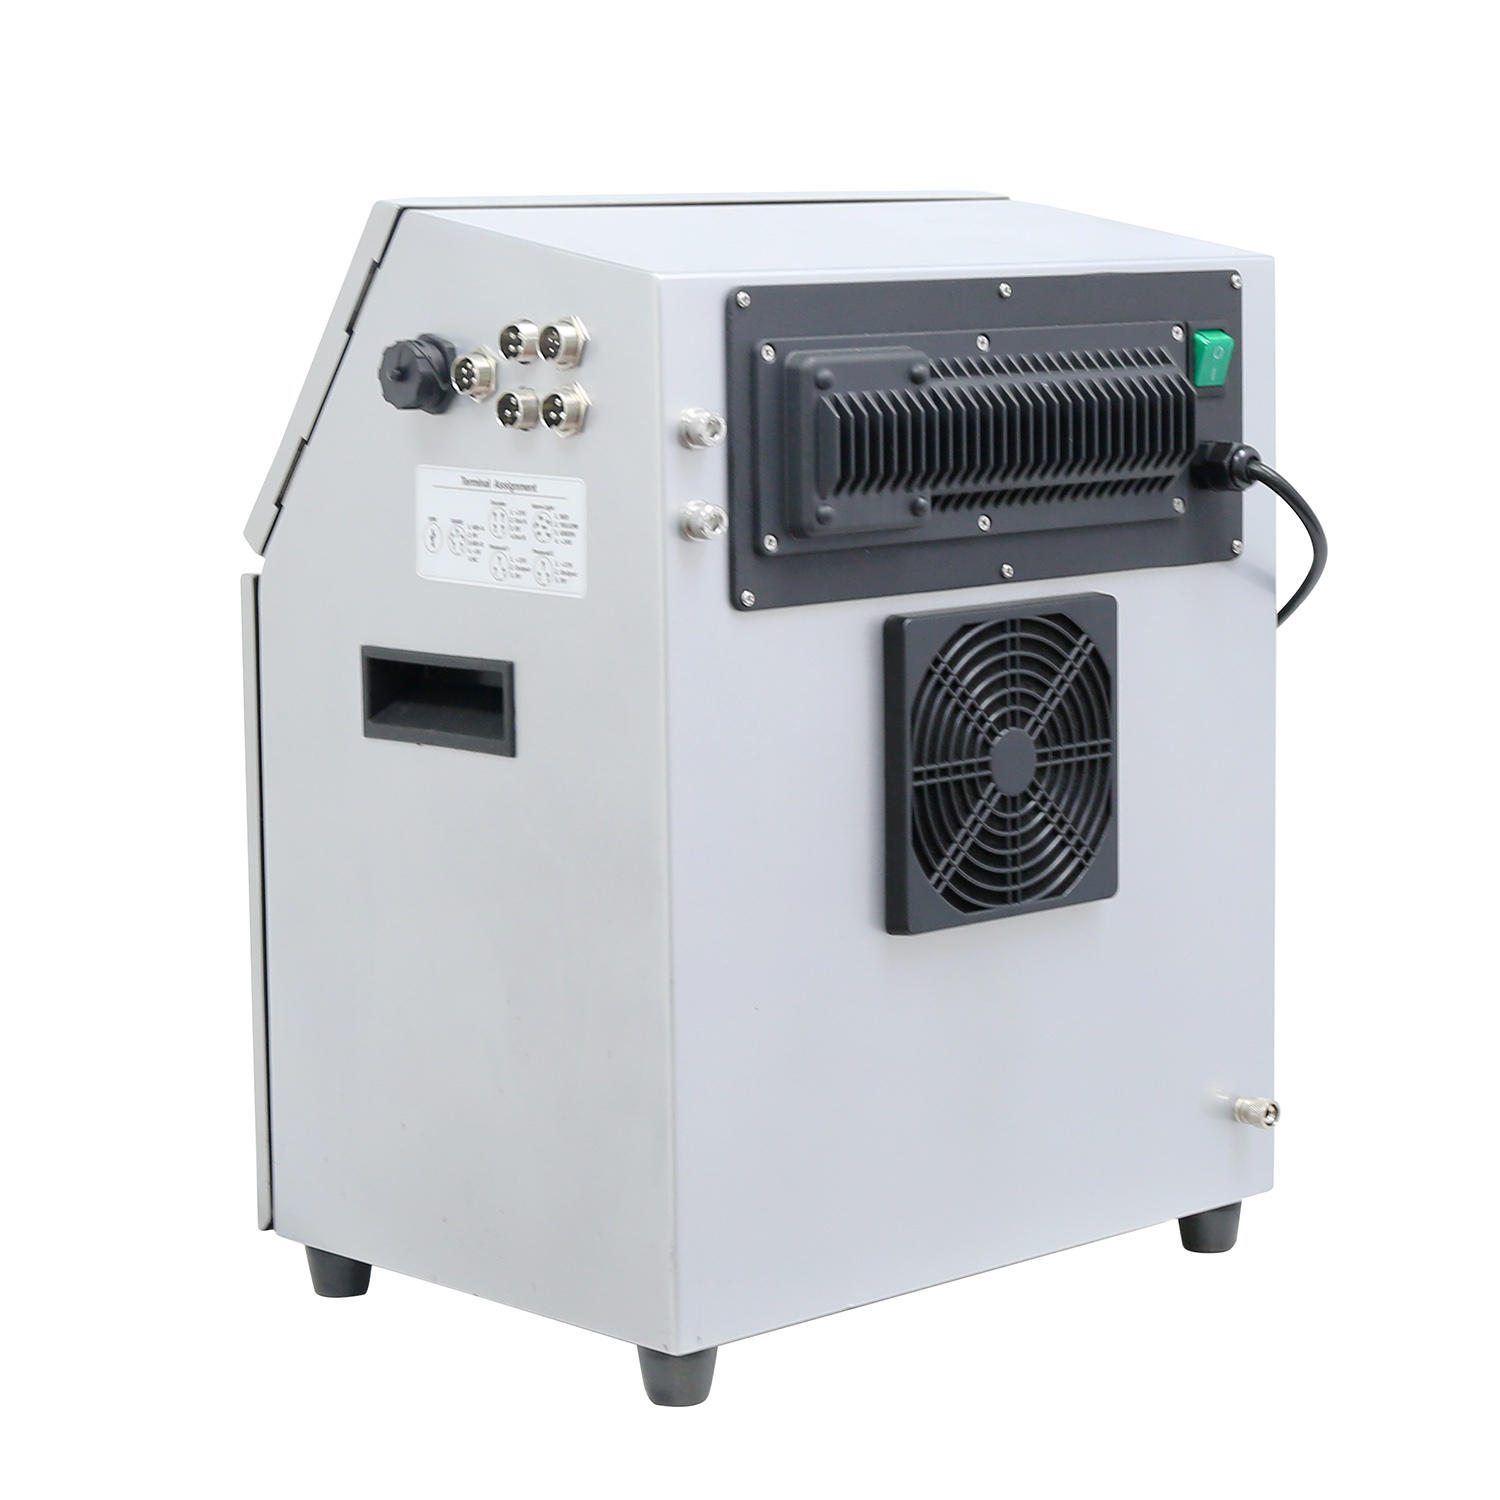 Lead Tech Lt800 Machine Printing Digital Label Printer